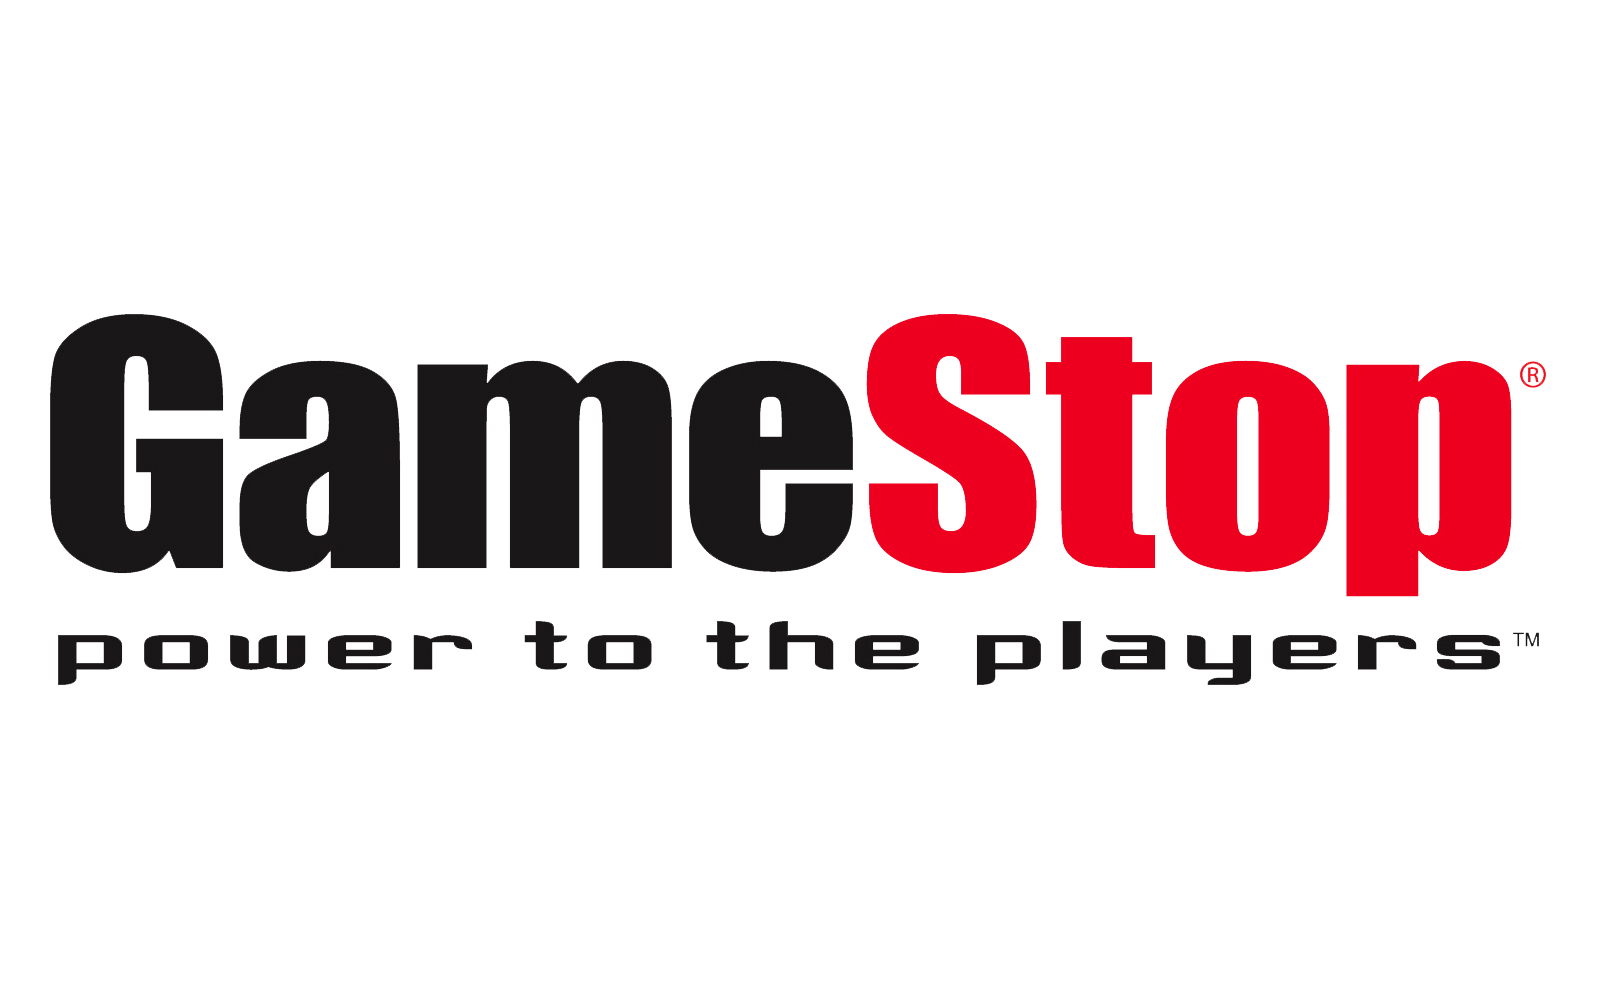 Lawsuit Against GameStop for Deceiving (Dumb) Customers